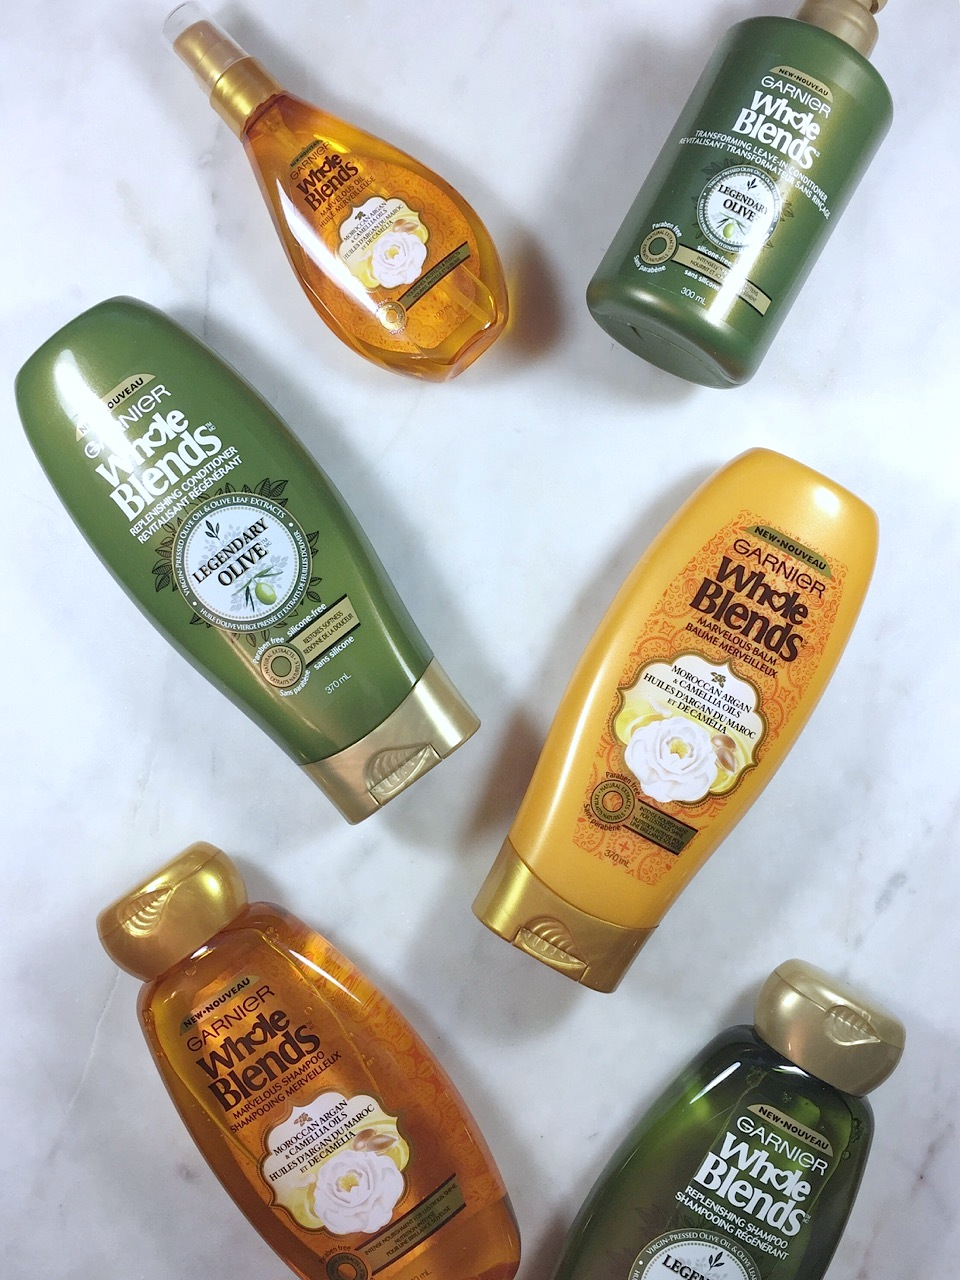 Garnier Whole Blends Moroccan Argan and Camellia Oil: A quick review